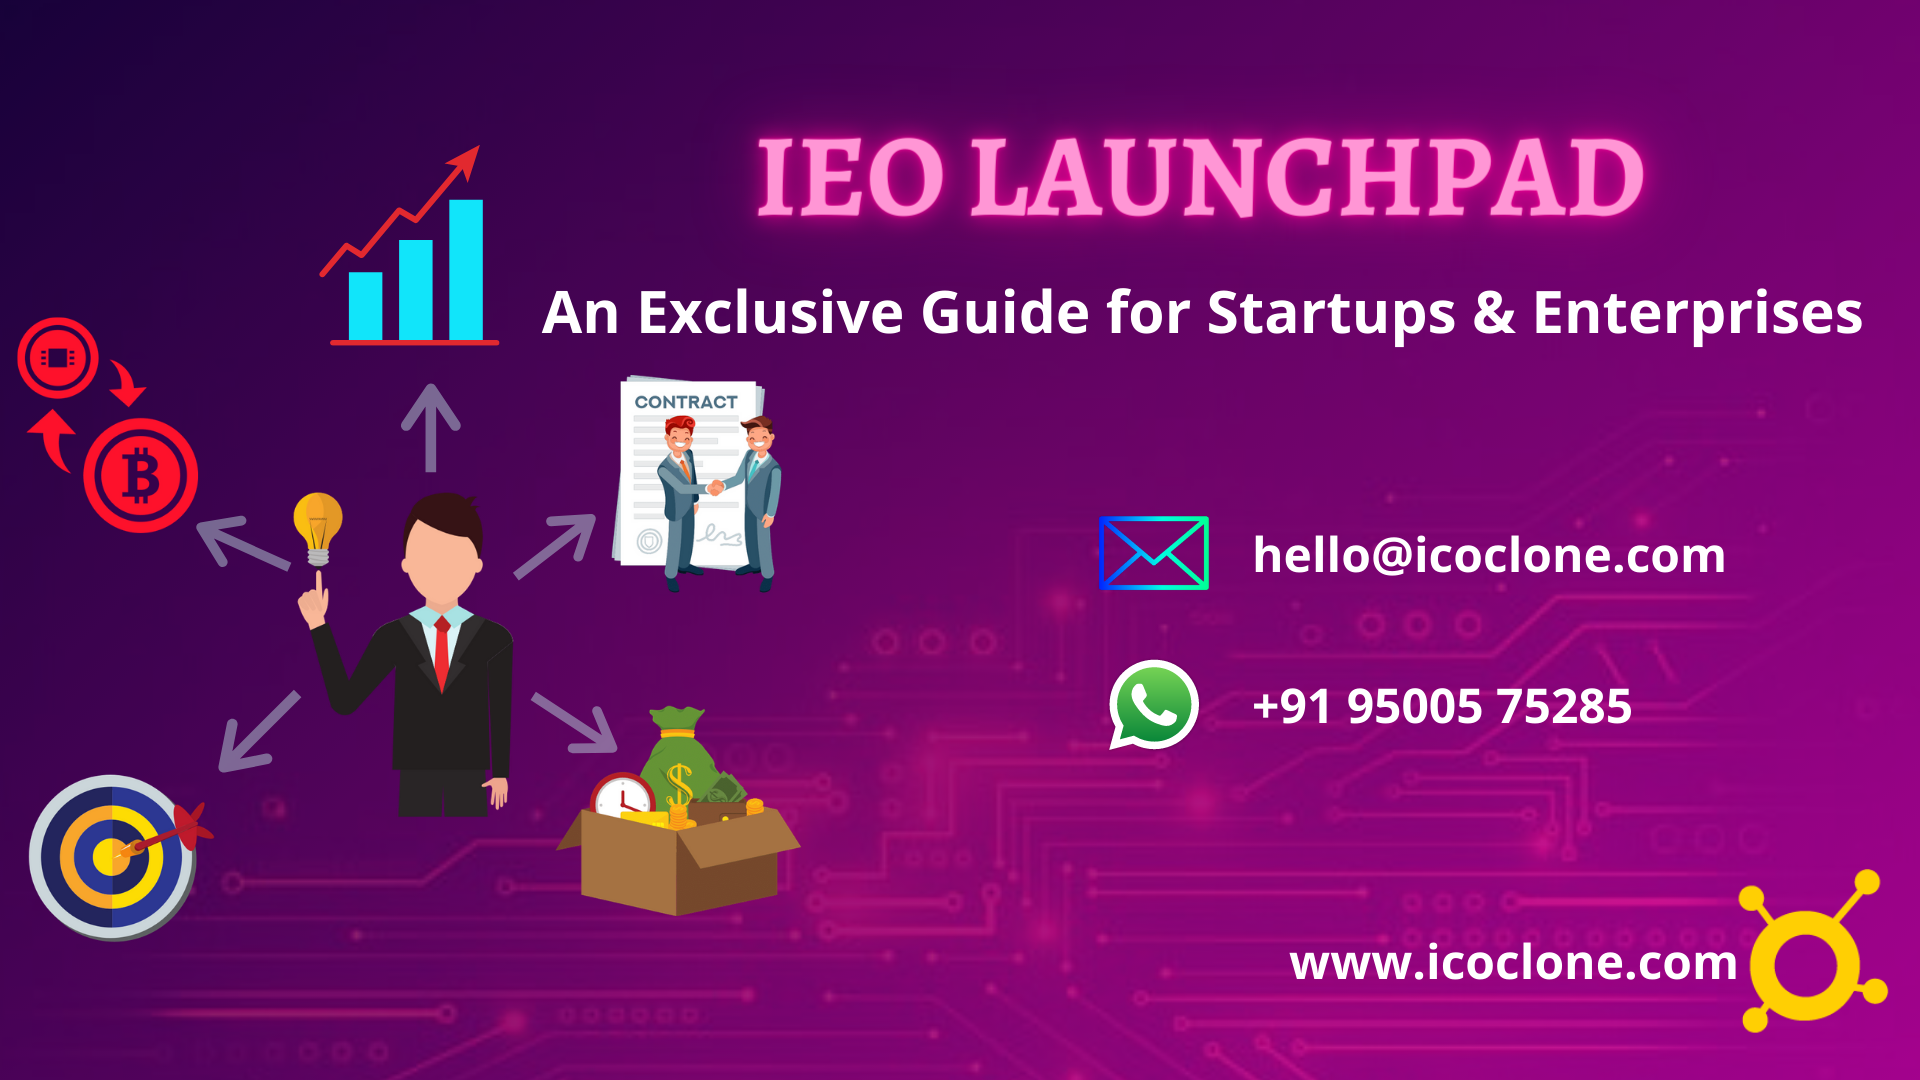 IEO Launchpad - An Exclusive Guide for Startups and Enterprises